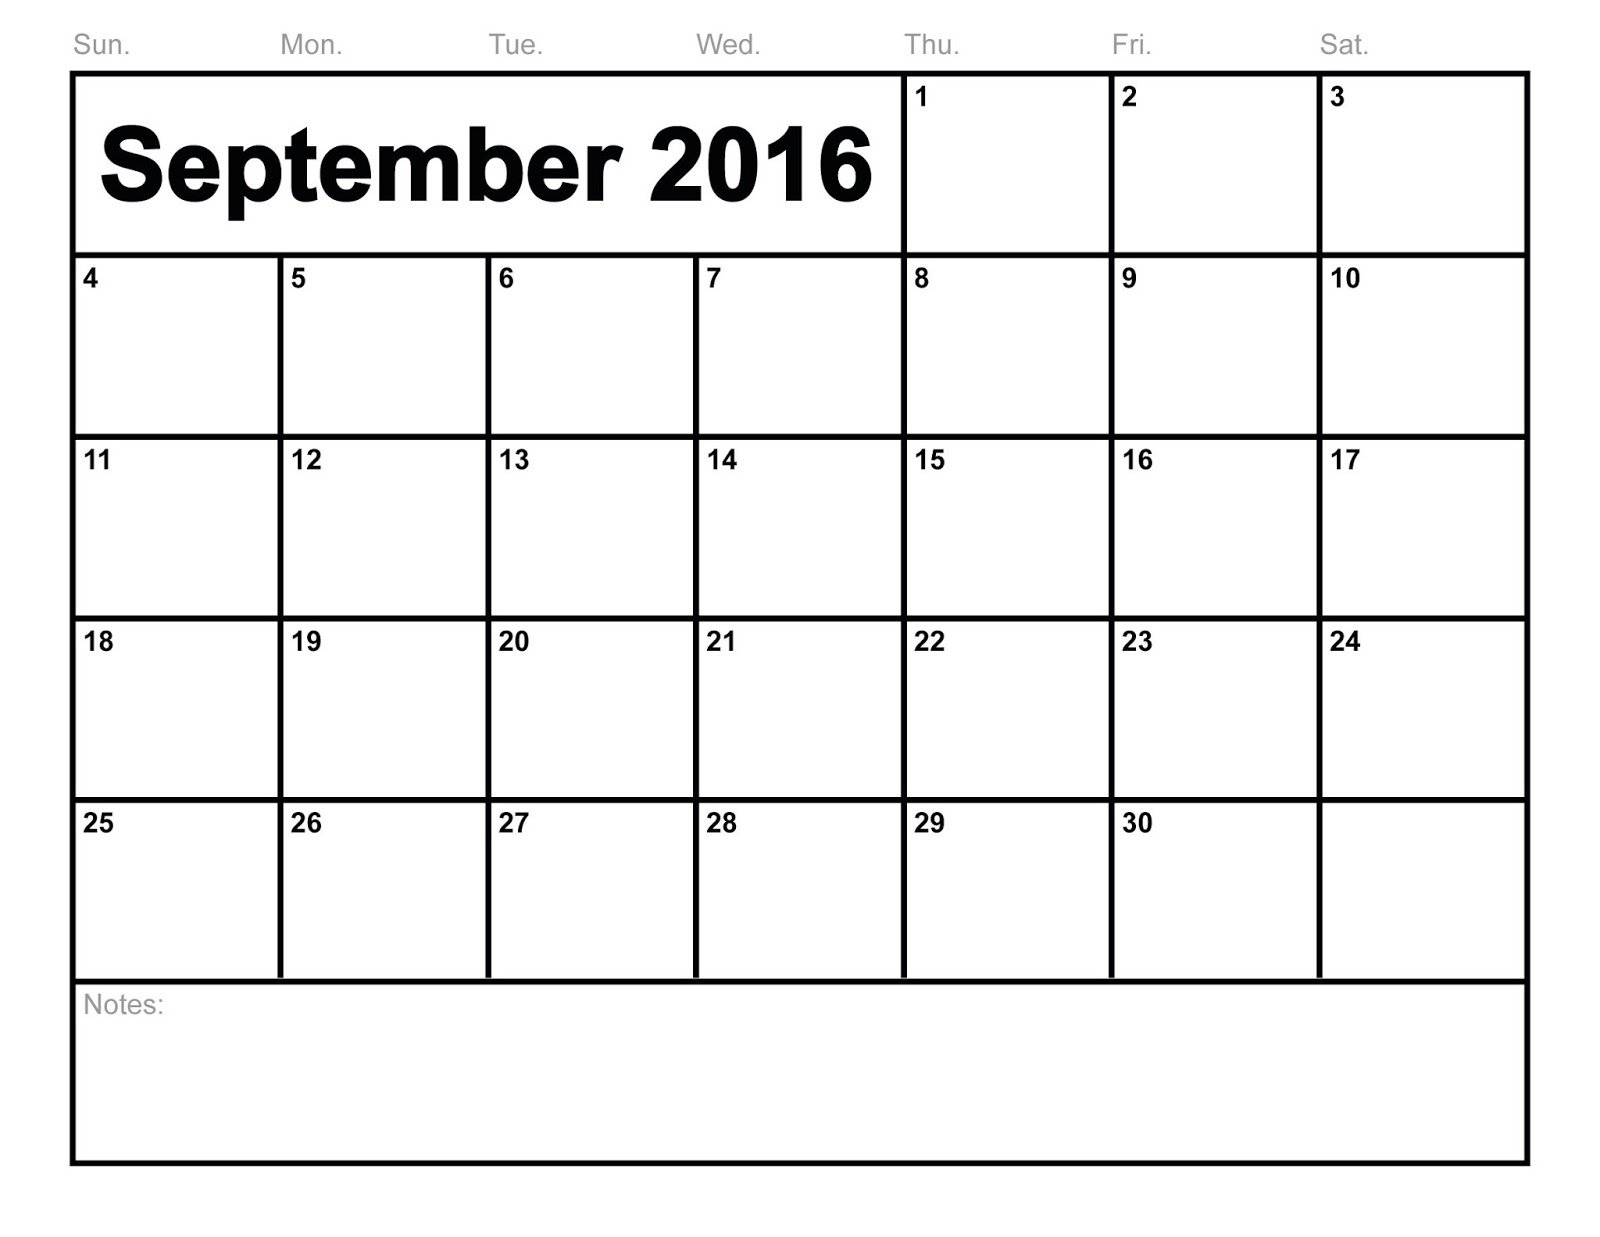 Monthly Calendars To Print Out And Fill :-Free Calendar Online Birthday Calenders To Fill In